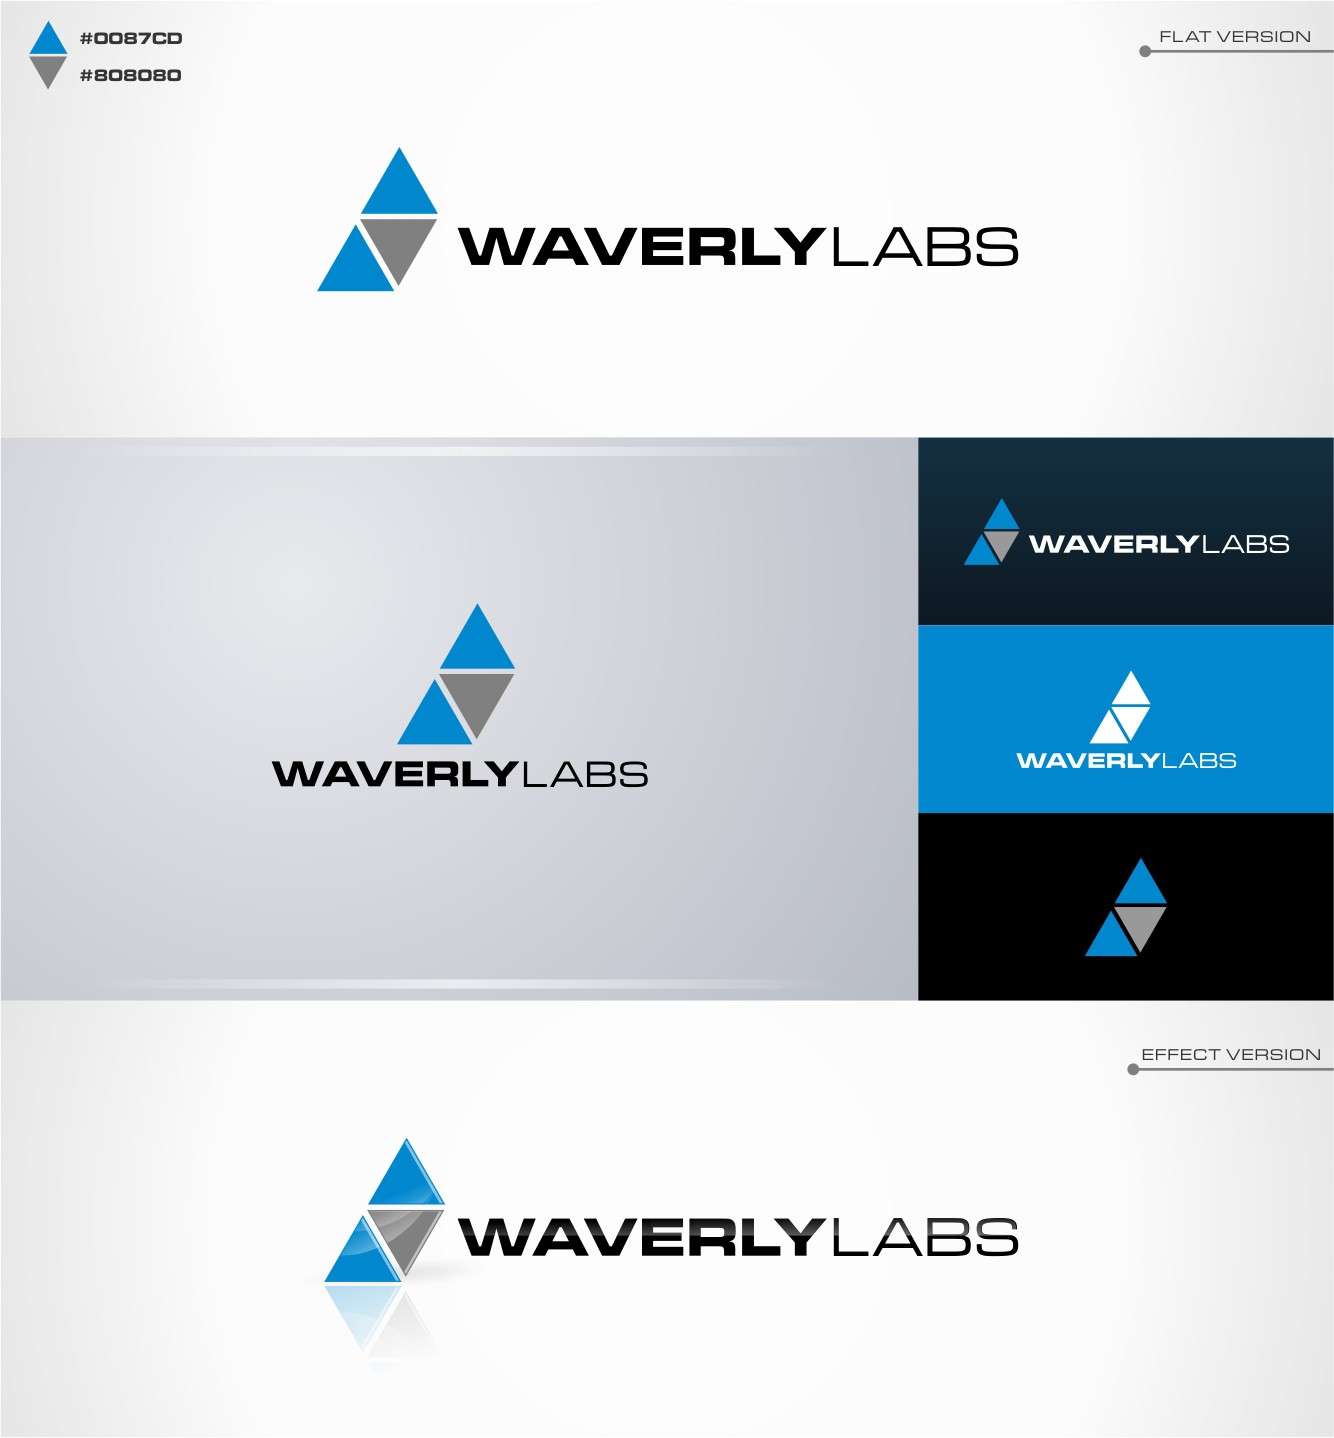 Create a modern and simple logo design for a startup tech company